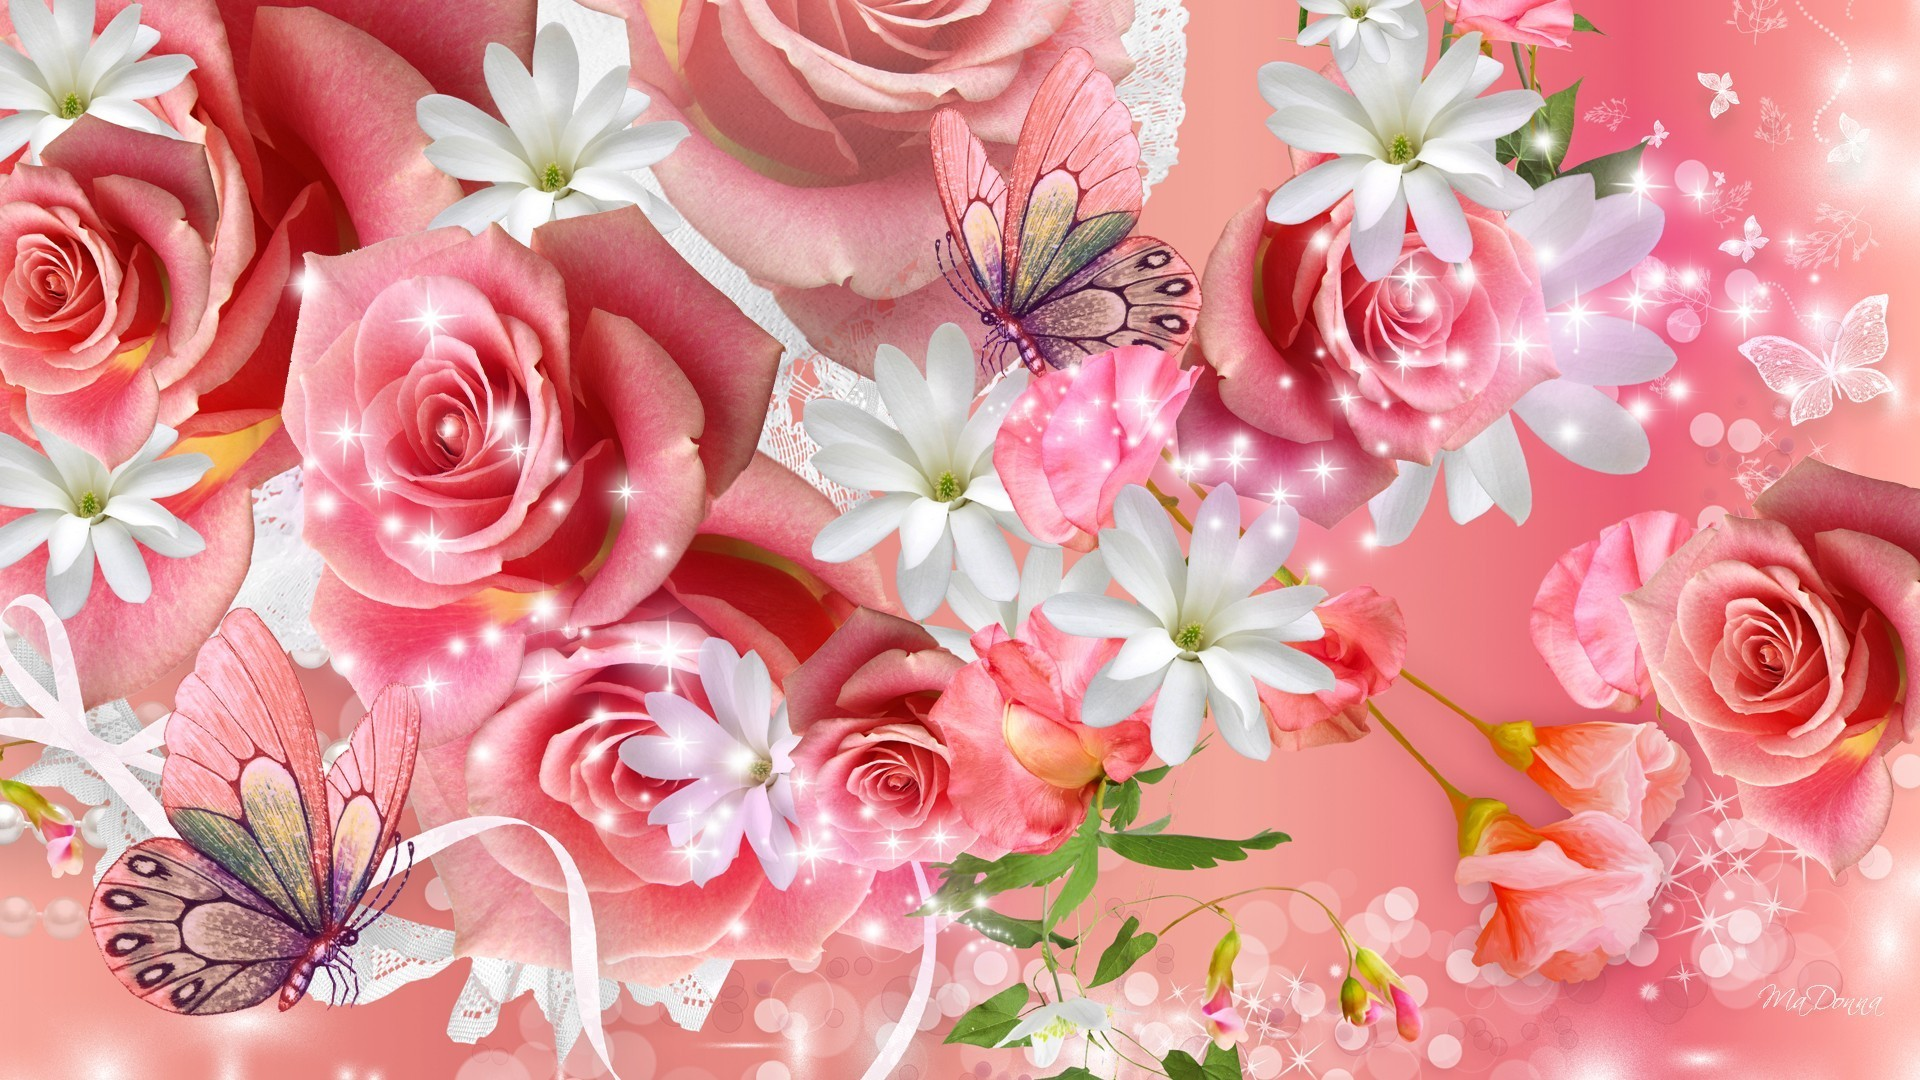 1920x1080 #DD8888 Color - Roses Butterflies Papillon Bright Flowers Blossoms Pink  Fleurs Frangipani Summer Blooms Rose